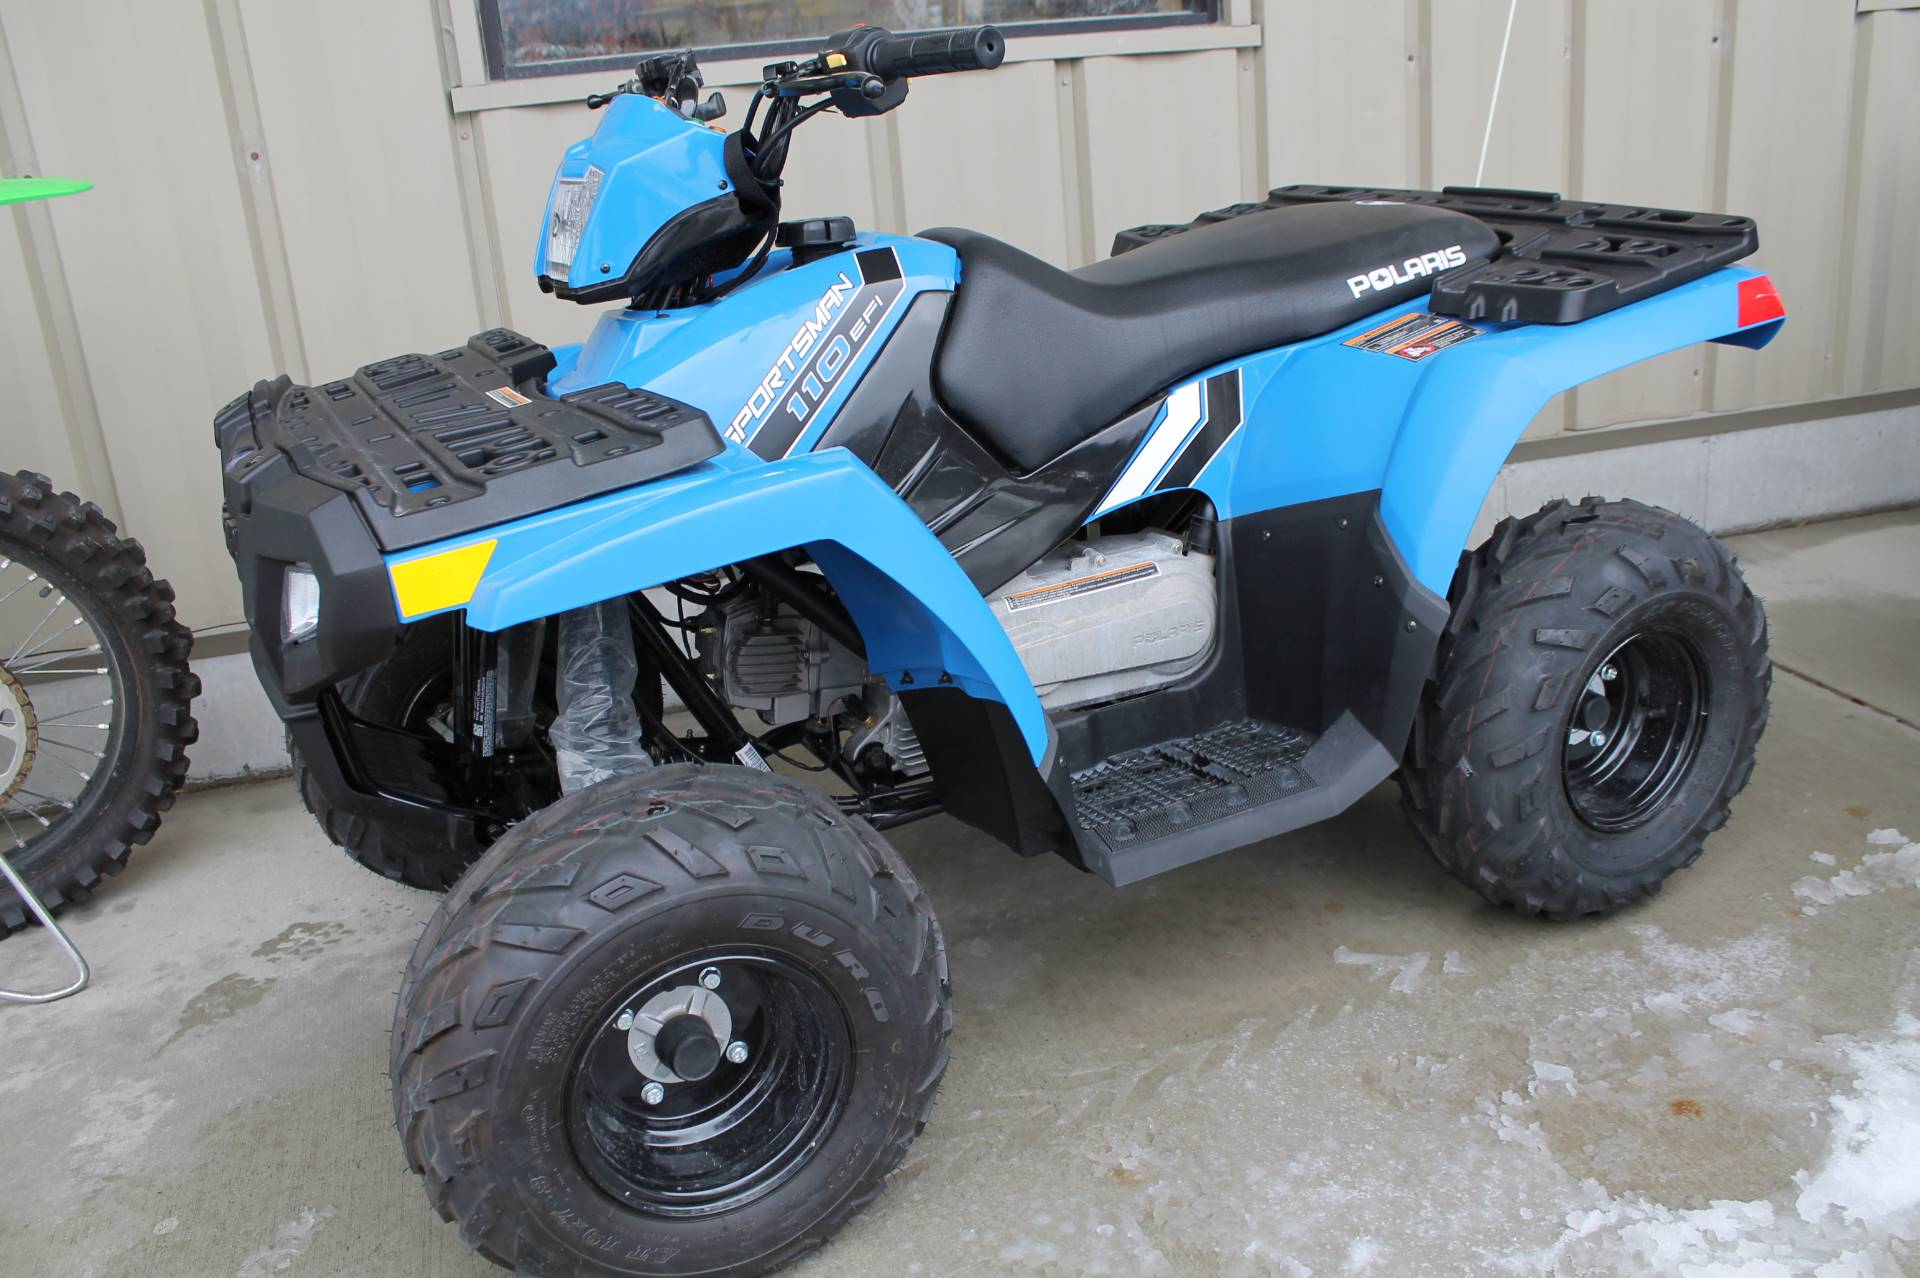 2019 Polaris Sportsman 110 EFI in Adams, Massachusetts